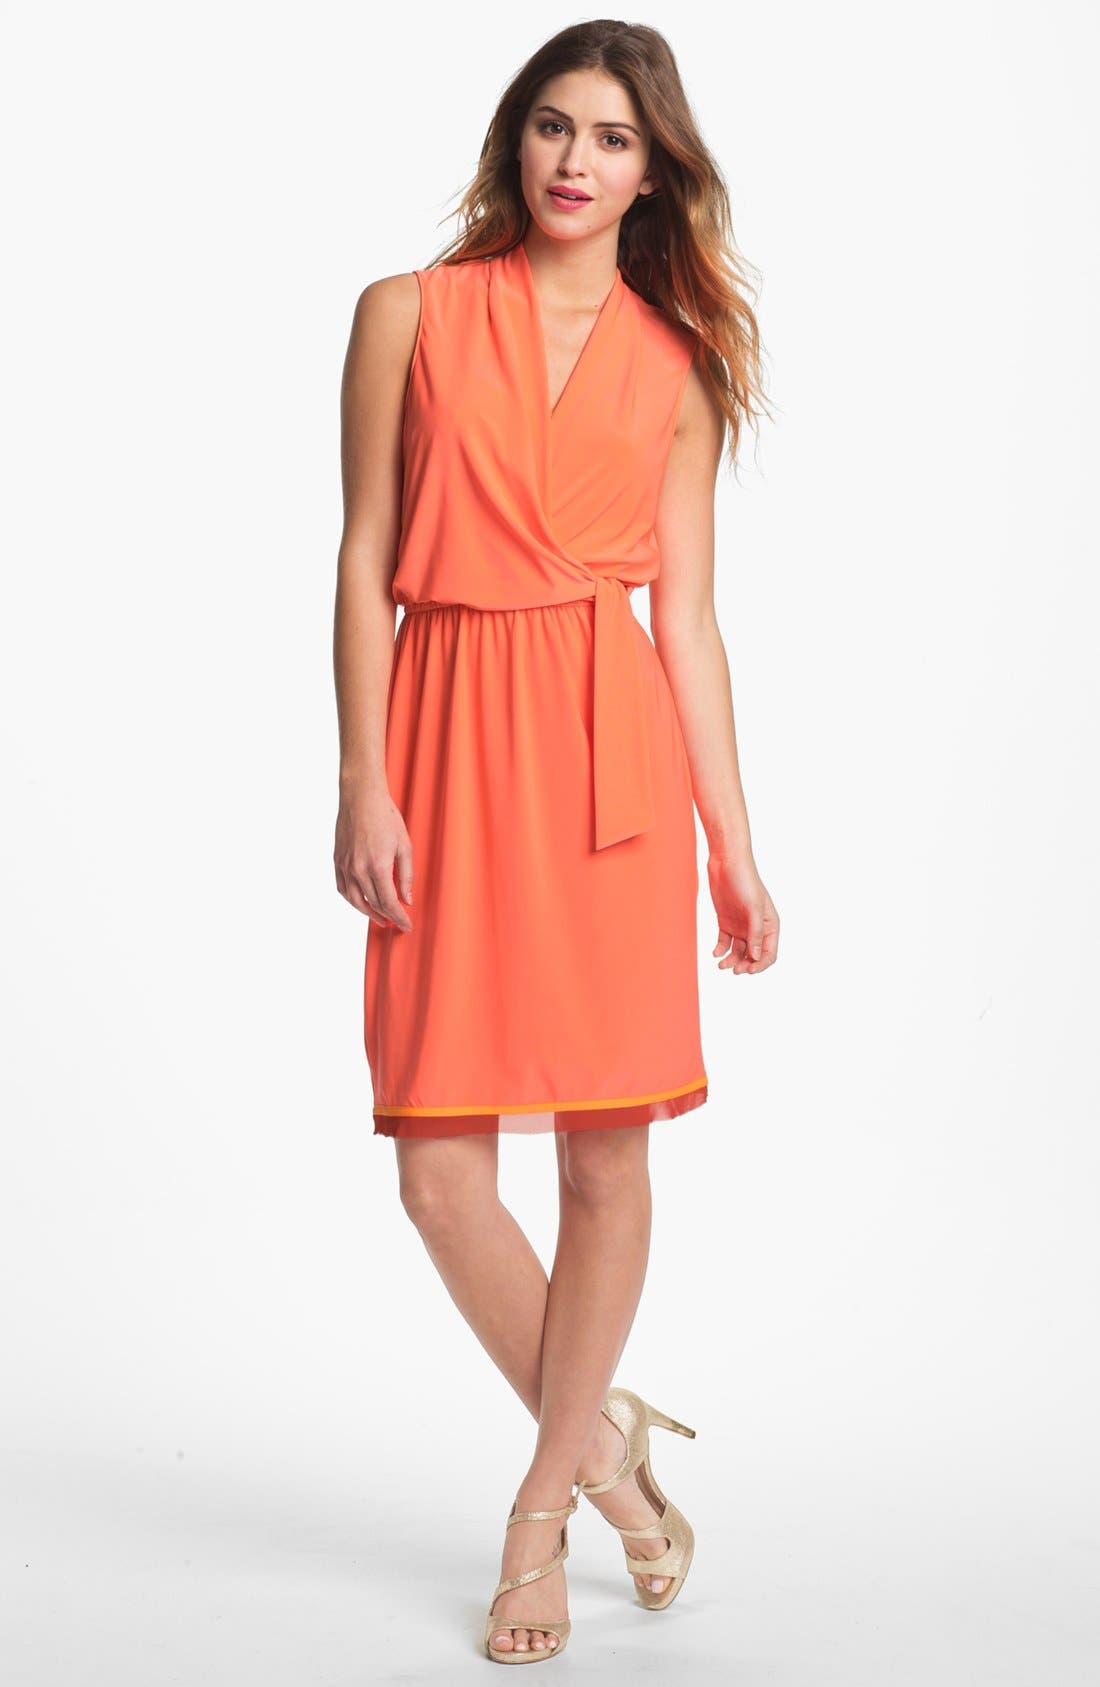 Alternate Image 1 Selected - T Tahari 'Holley' Dress